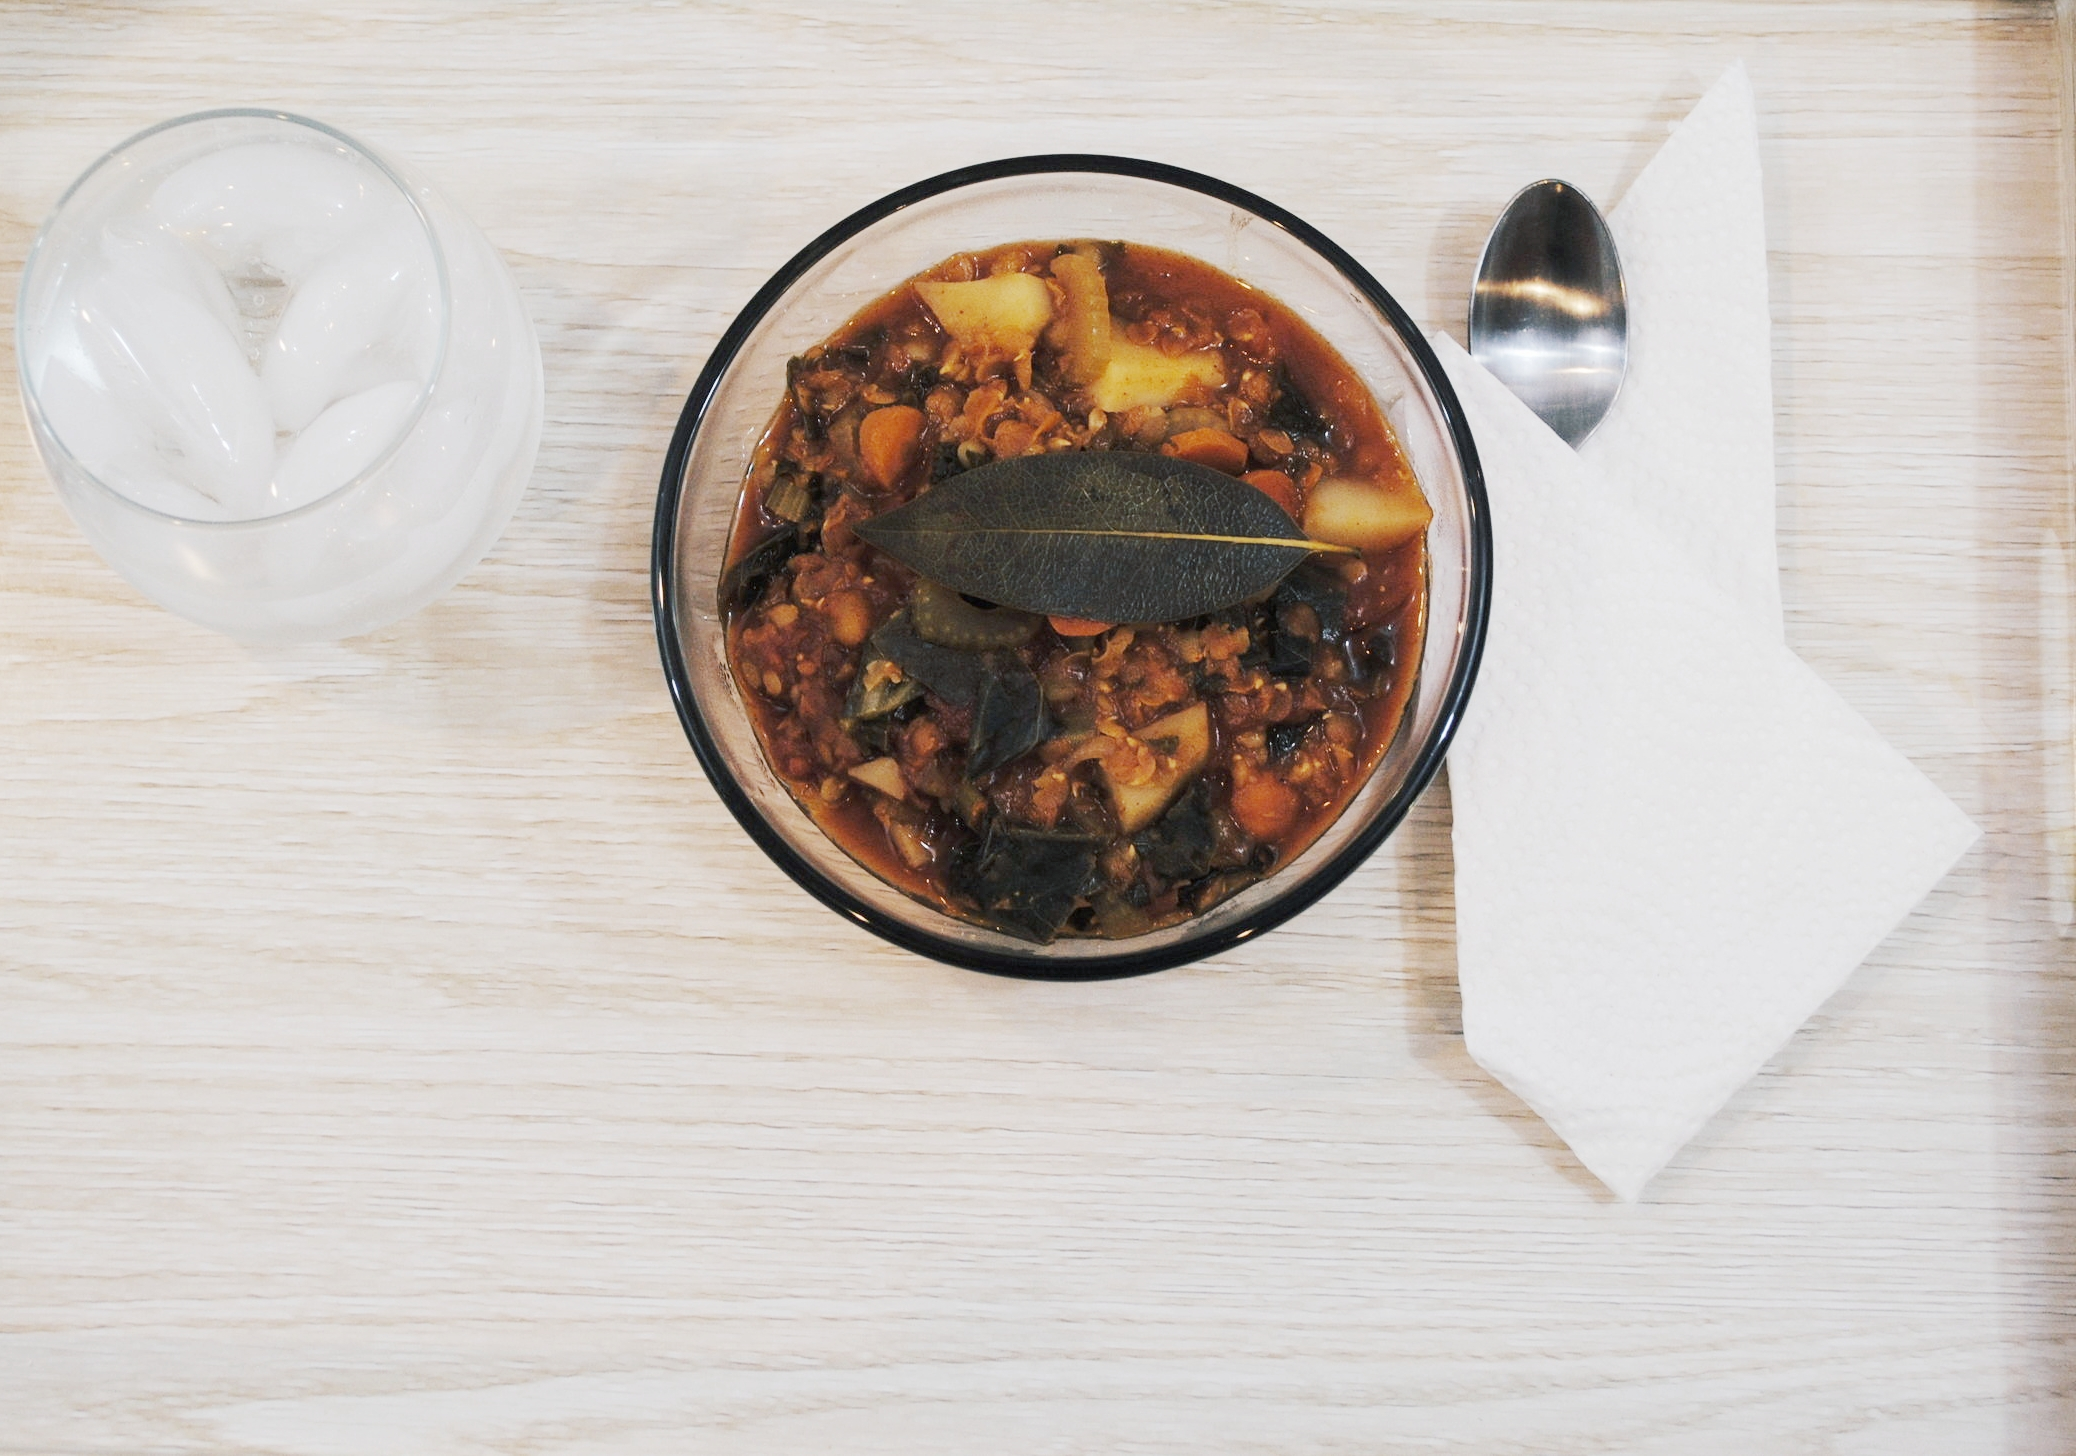 Spicy Garden Vegetable Lentil Stew   (Lentil beans, diced tomatoes, rainbow carrots, celery, onion, potatoes, kale and collard greens)